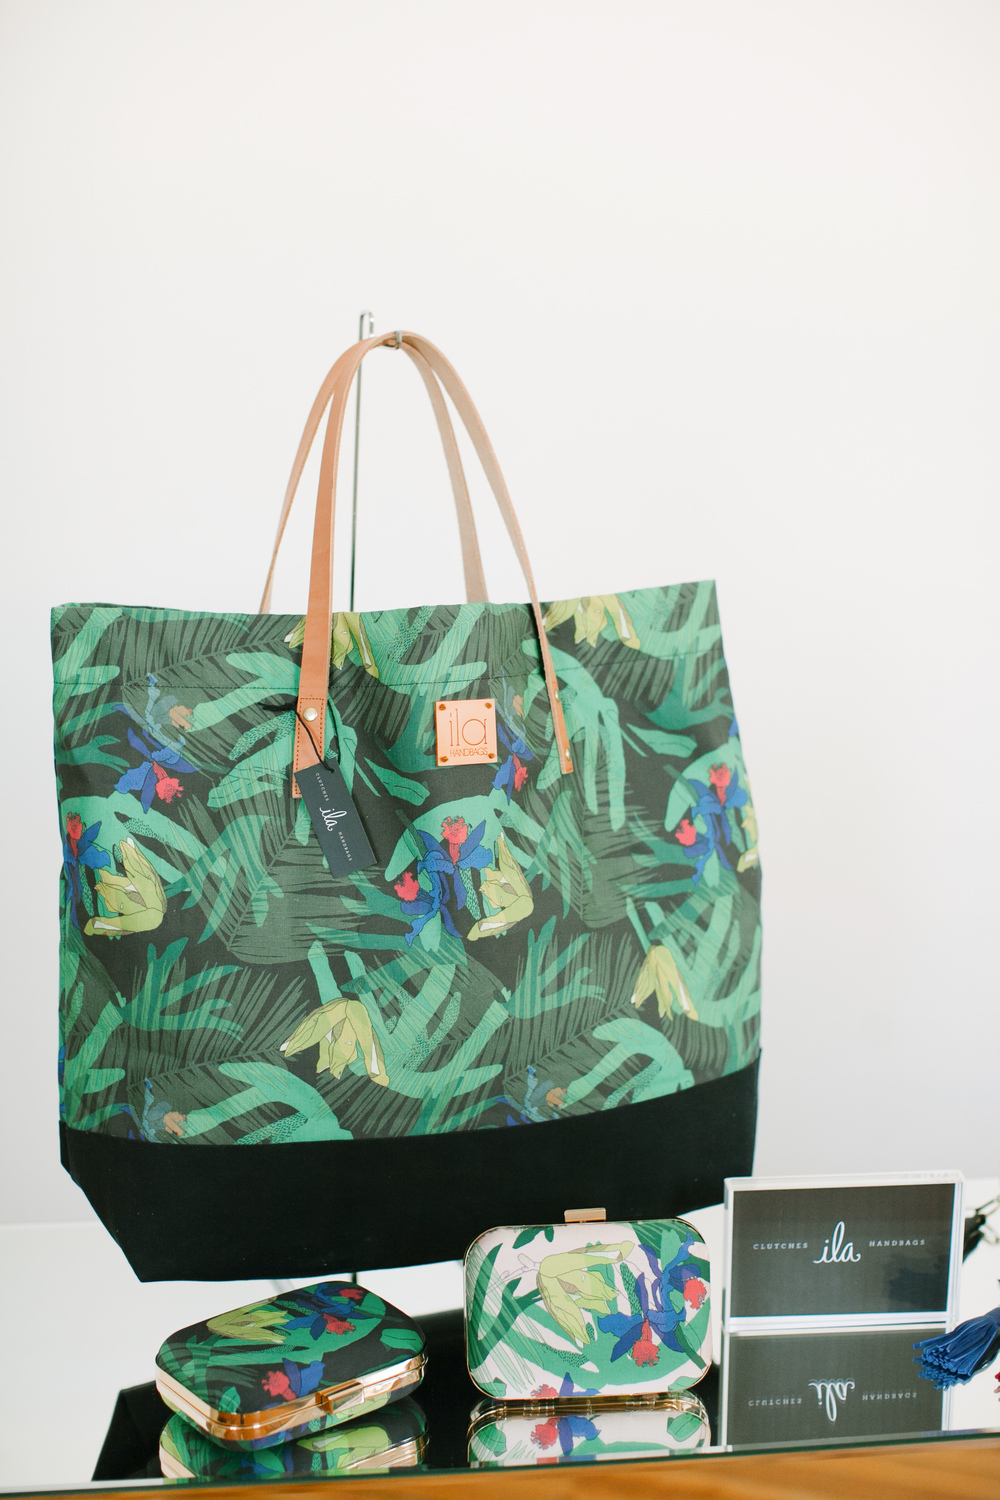 Palm Print Oversized Tote in Black ;  Palm Print Box Clutches  in Pale Pink + Black